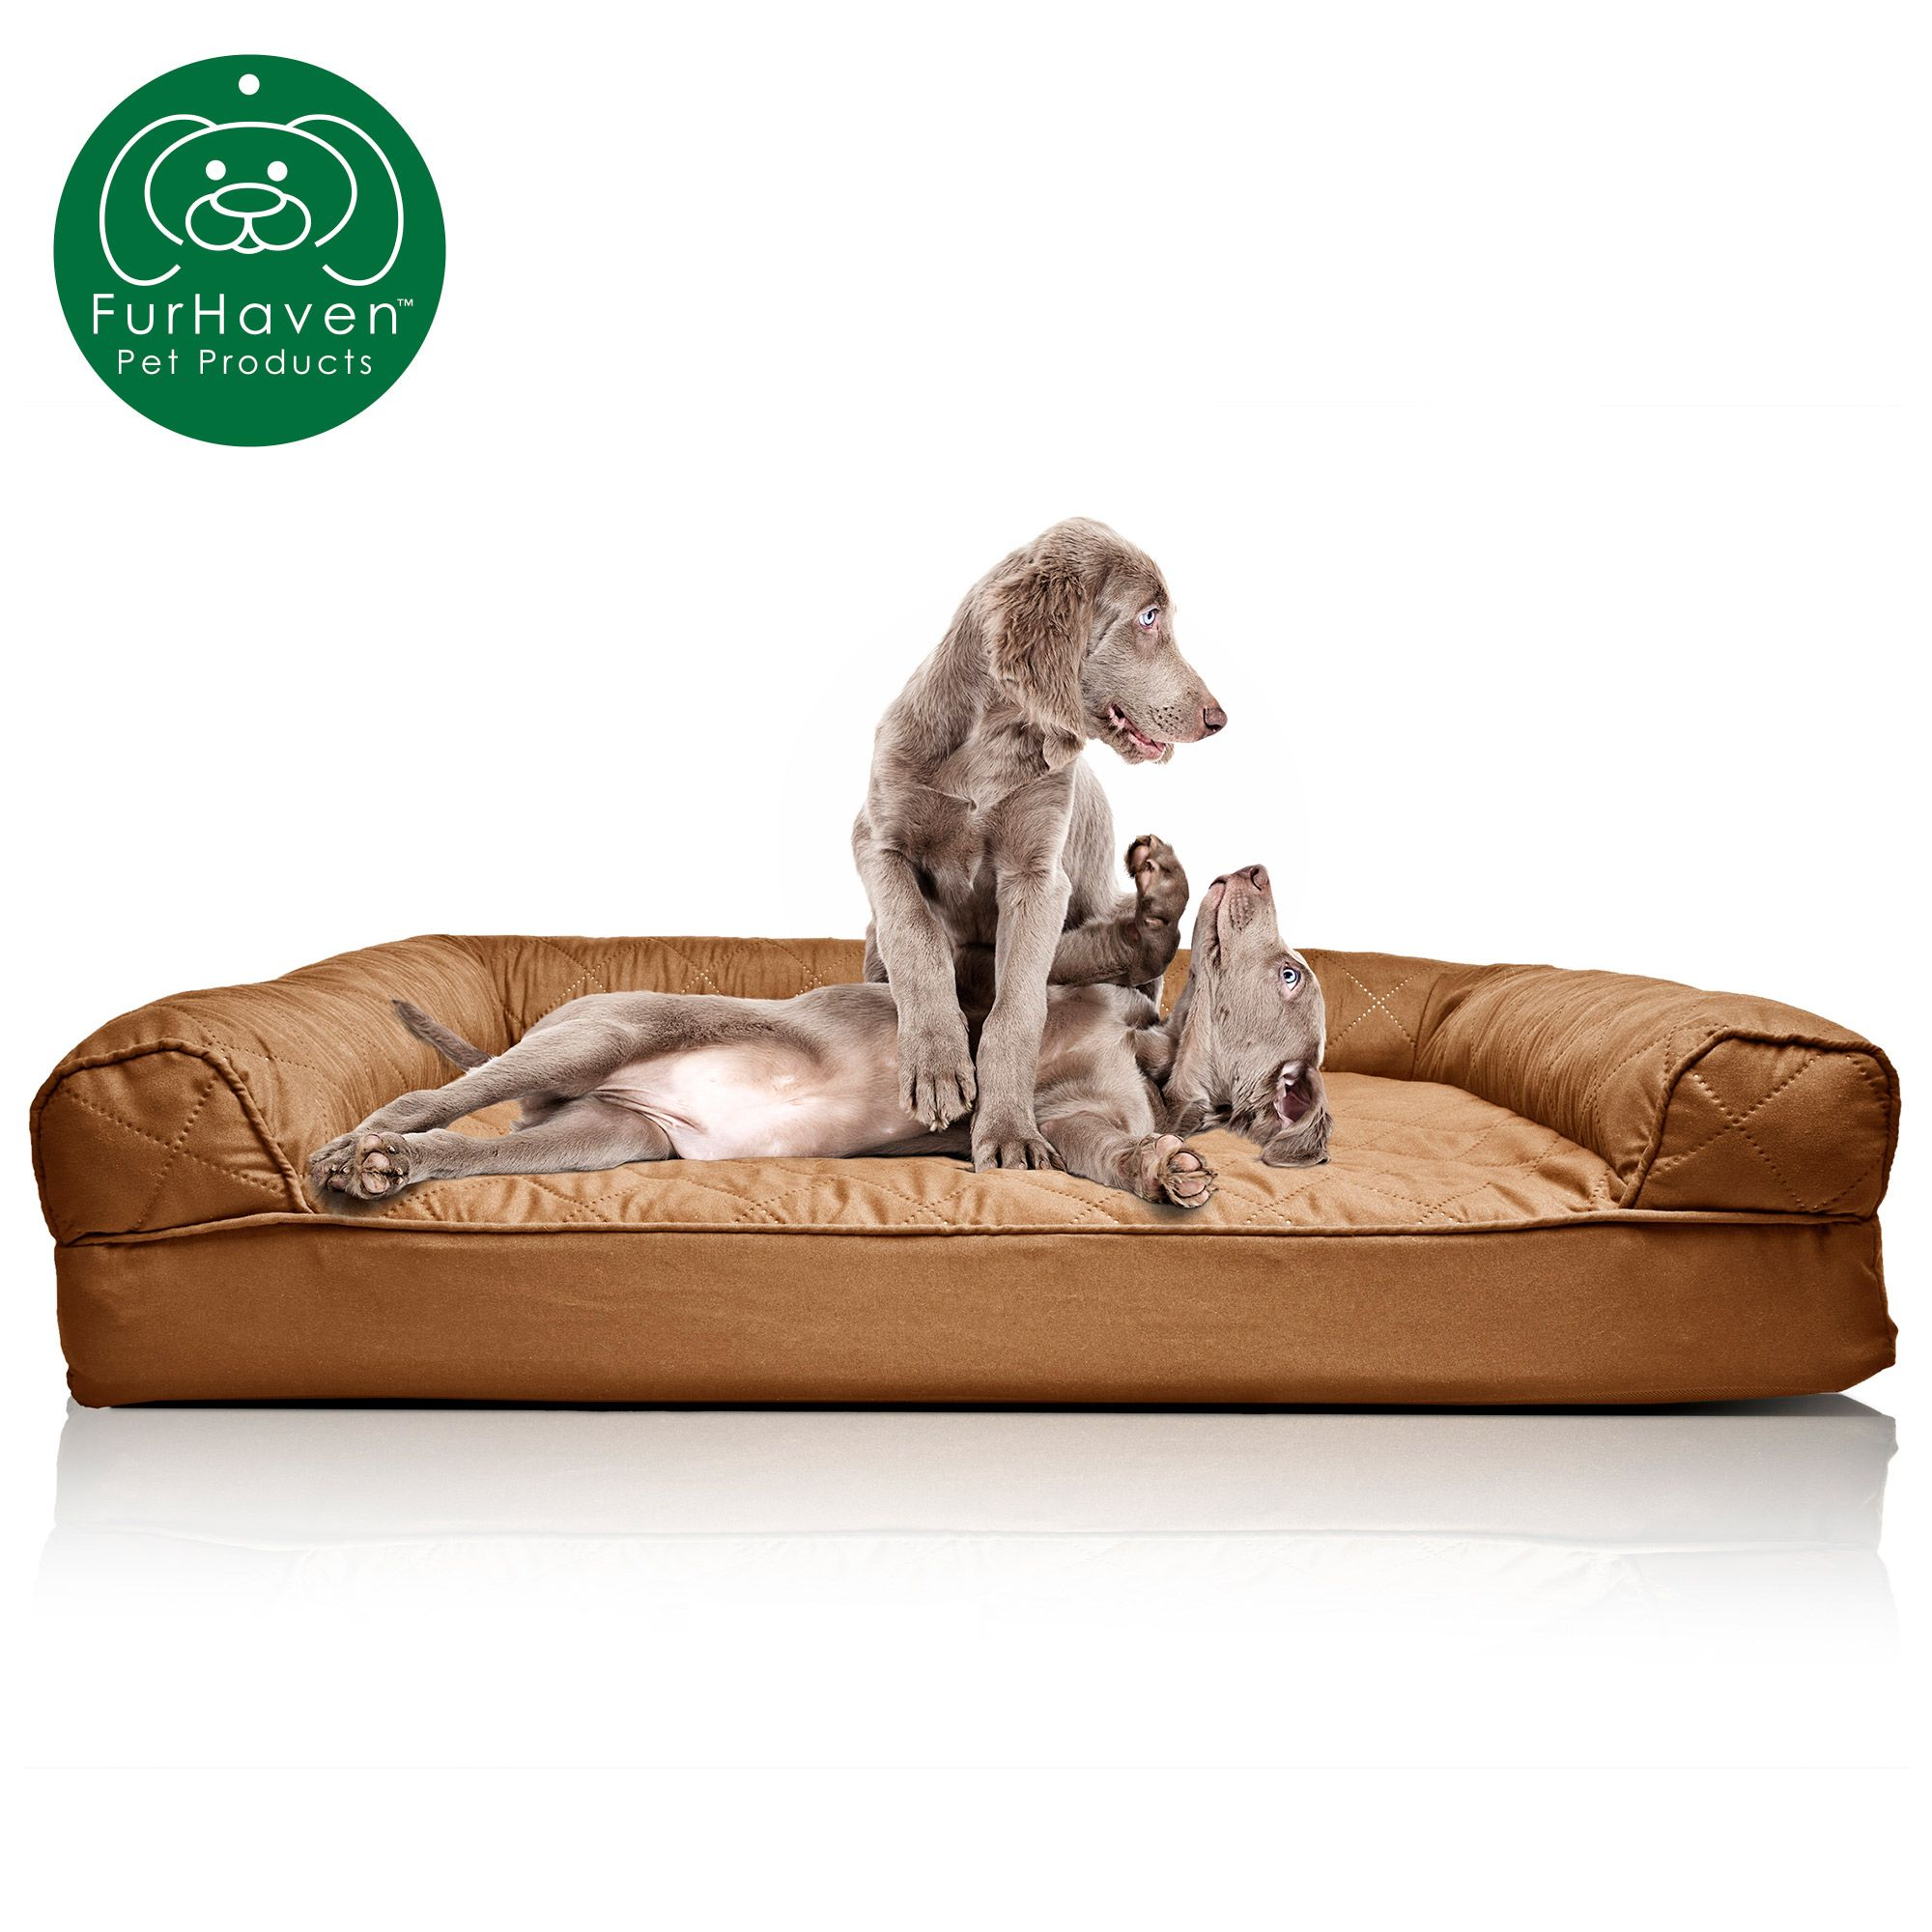 Furhaven Pet Dog Bed Orthopedic Quilted Sofa Style Couch Pet Bed For Dogs Cats Toasted Brown Jumbo Walmart Com Dog Pet Beds Orthopedic Dog Bed Comfiest Dog Bed